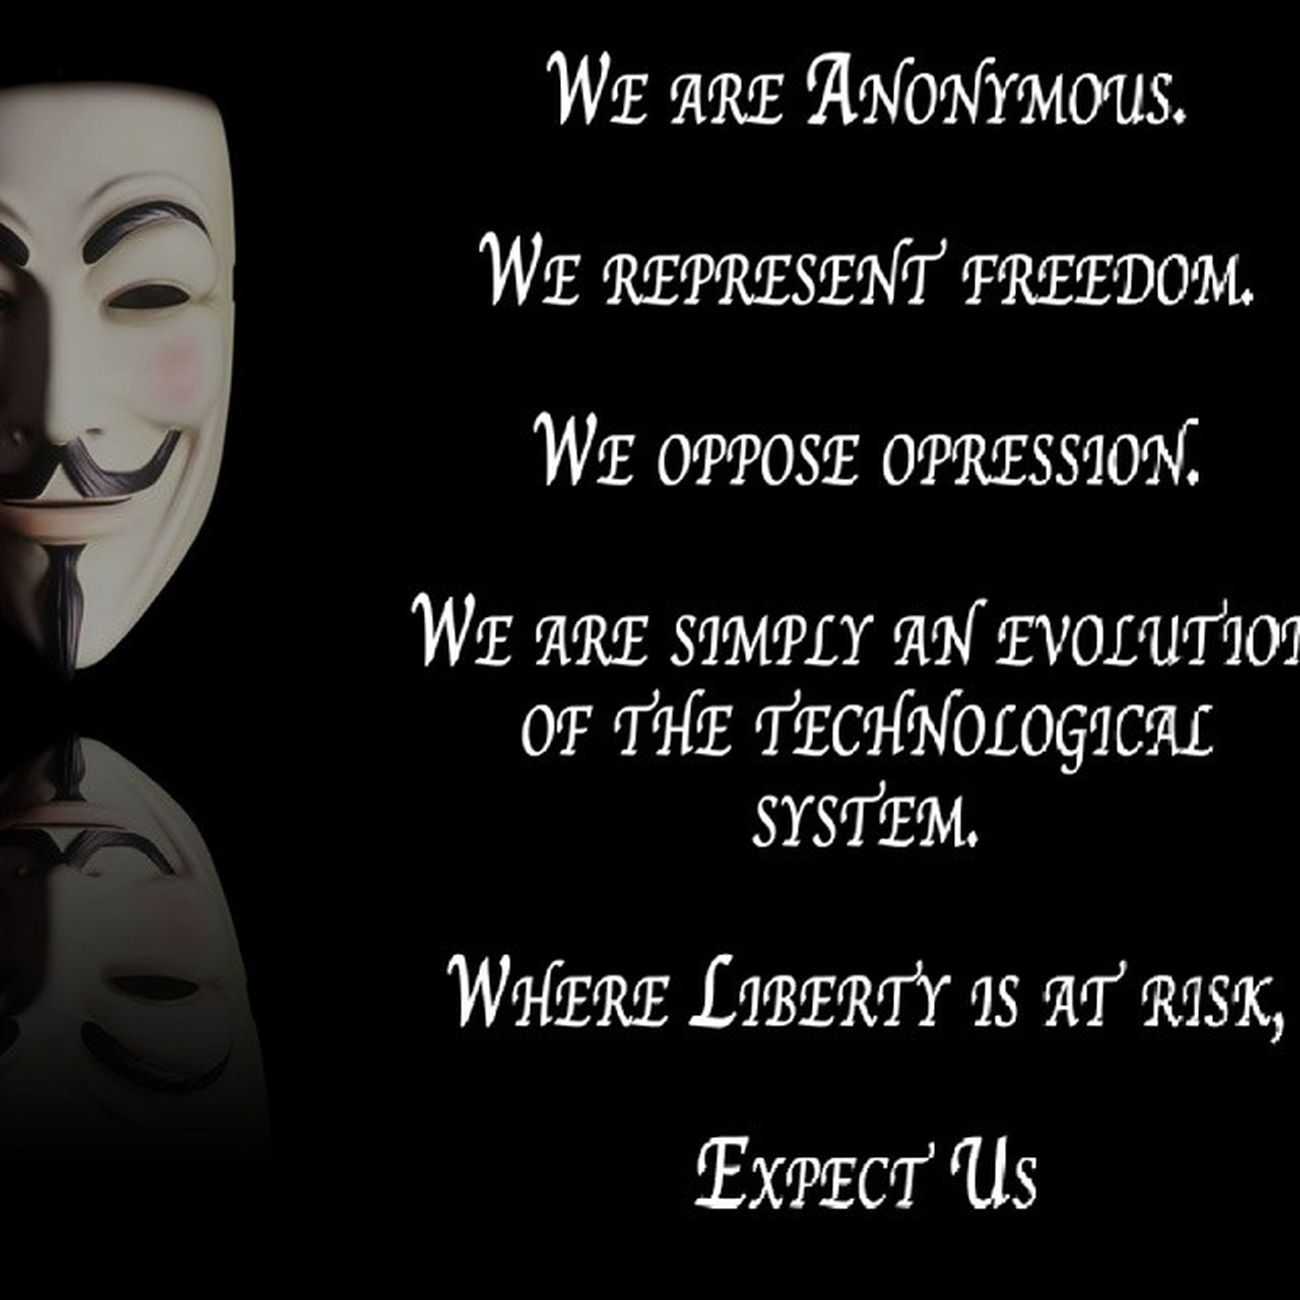 AnonymousSociety